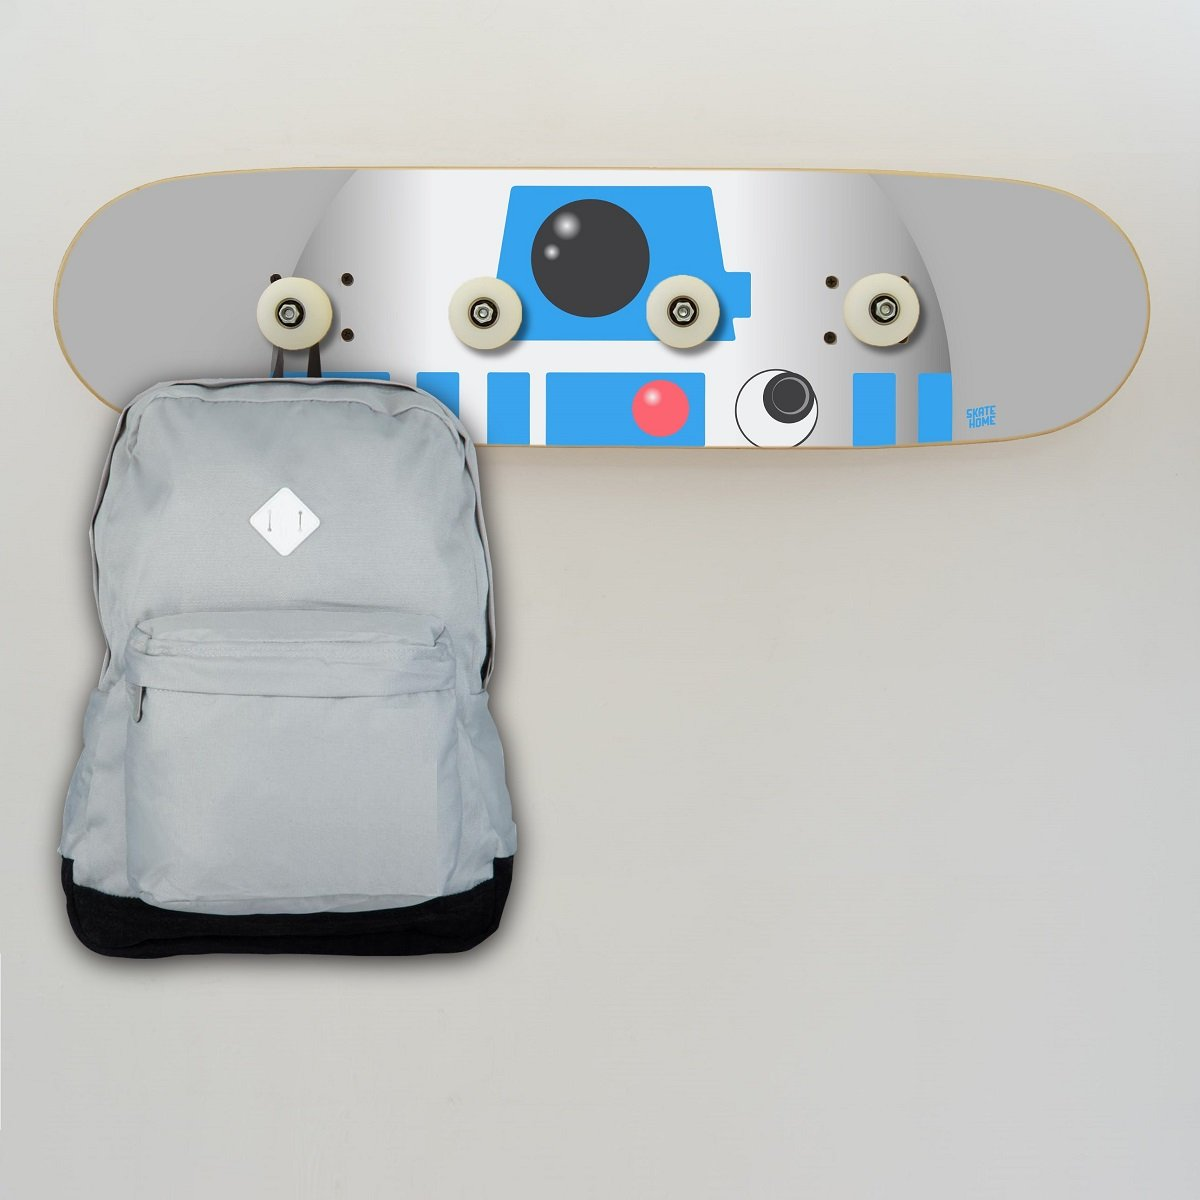 Amazon.com: Skateboard.R2-D2 Star Wars Modern Wooden Board ...